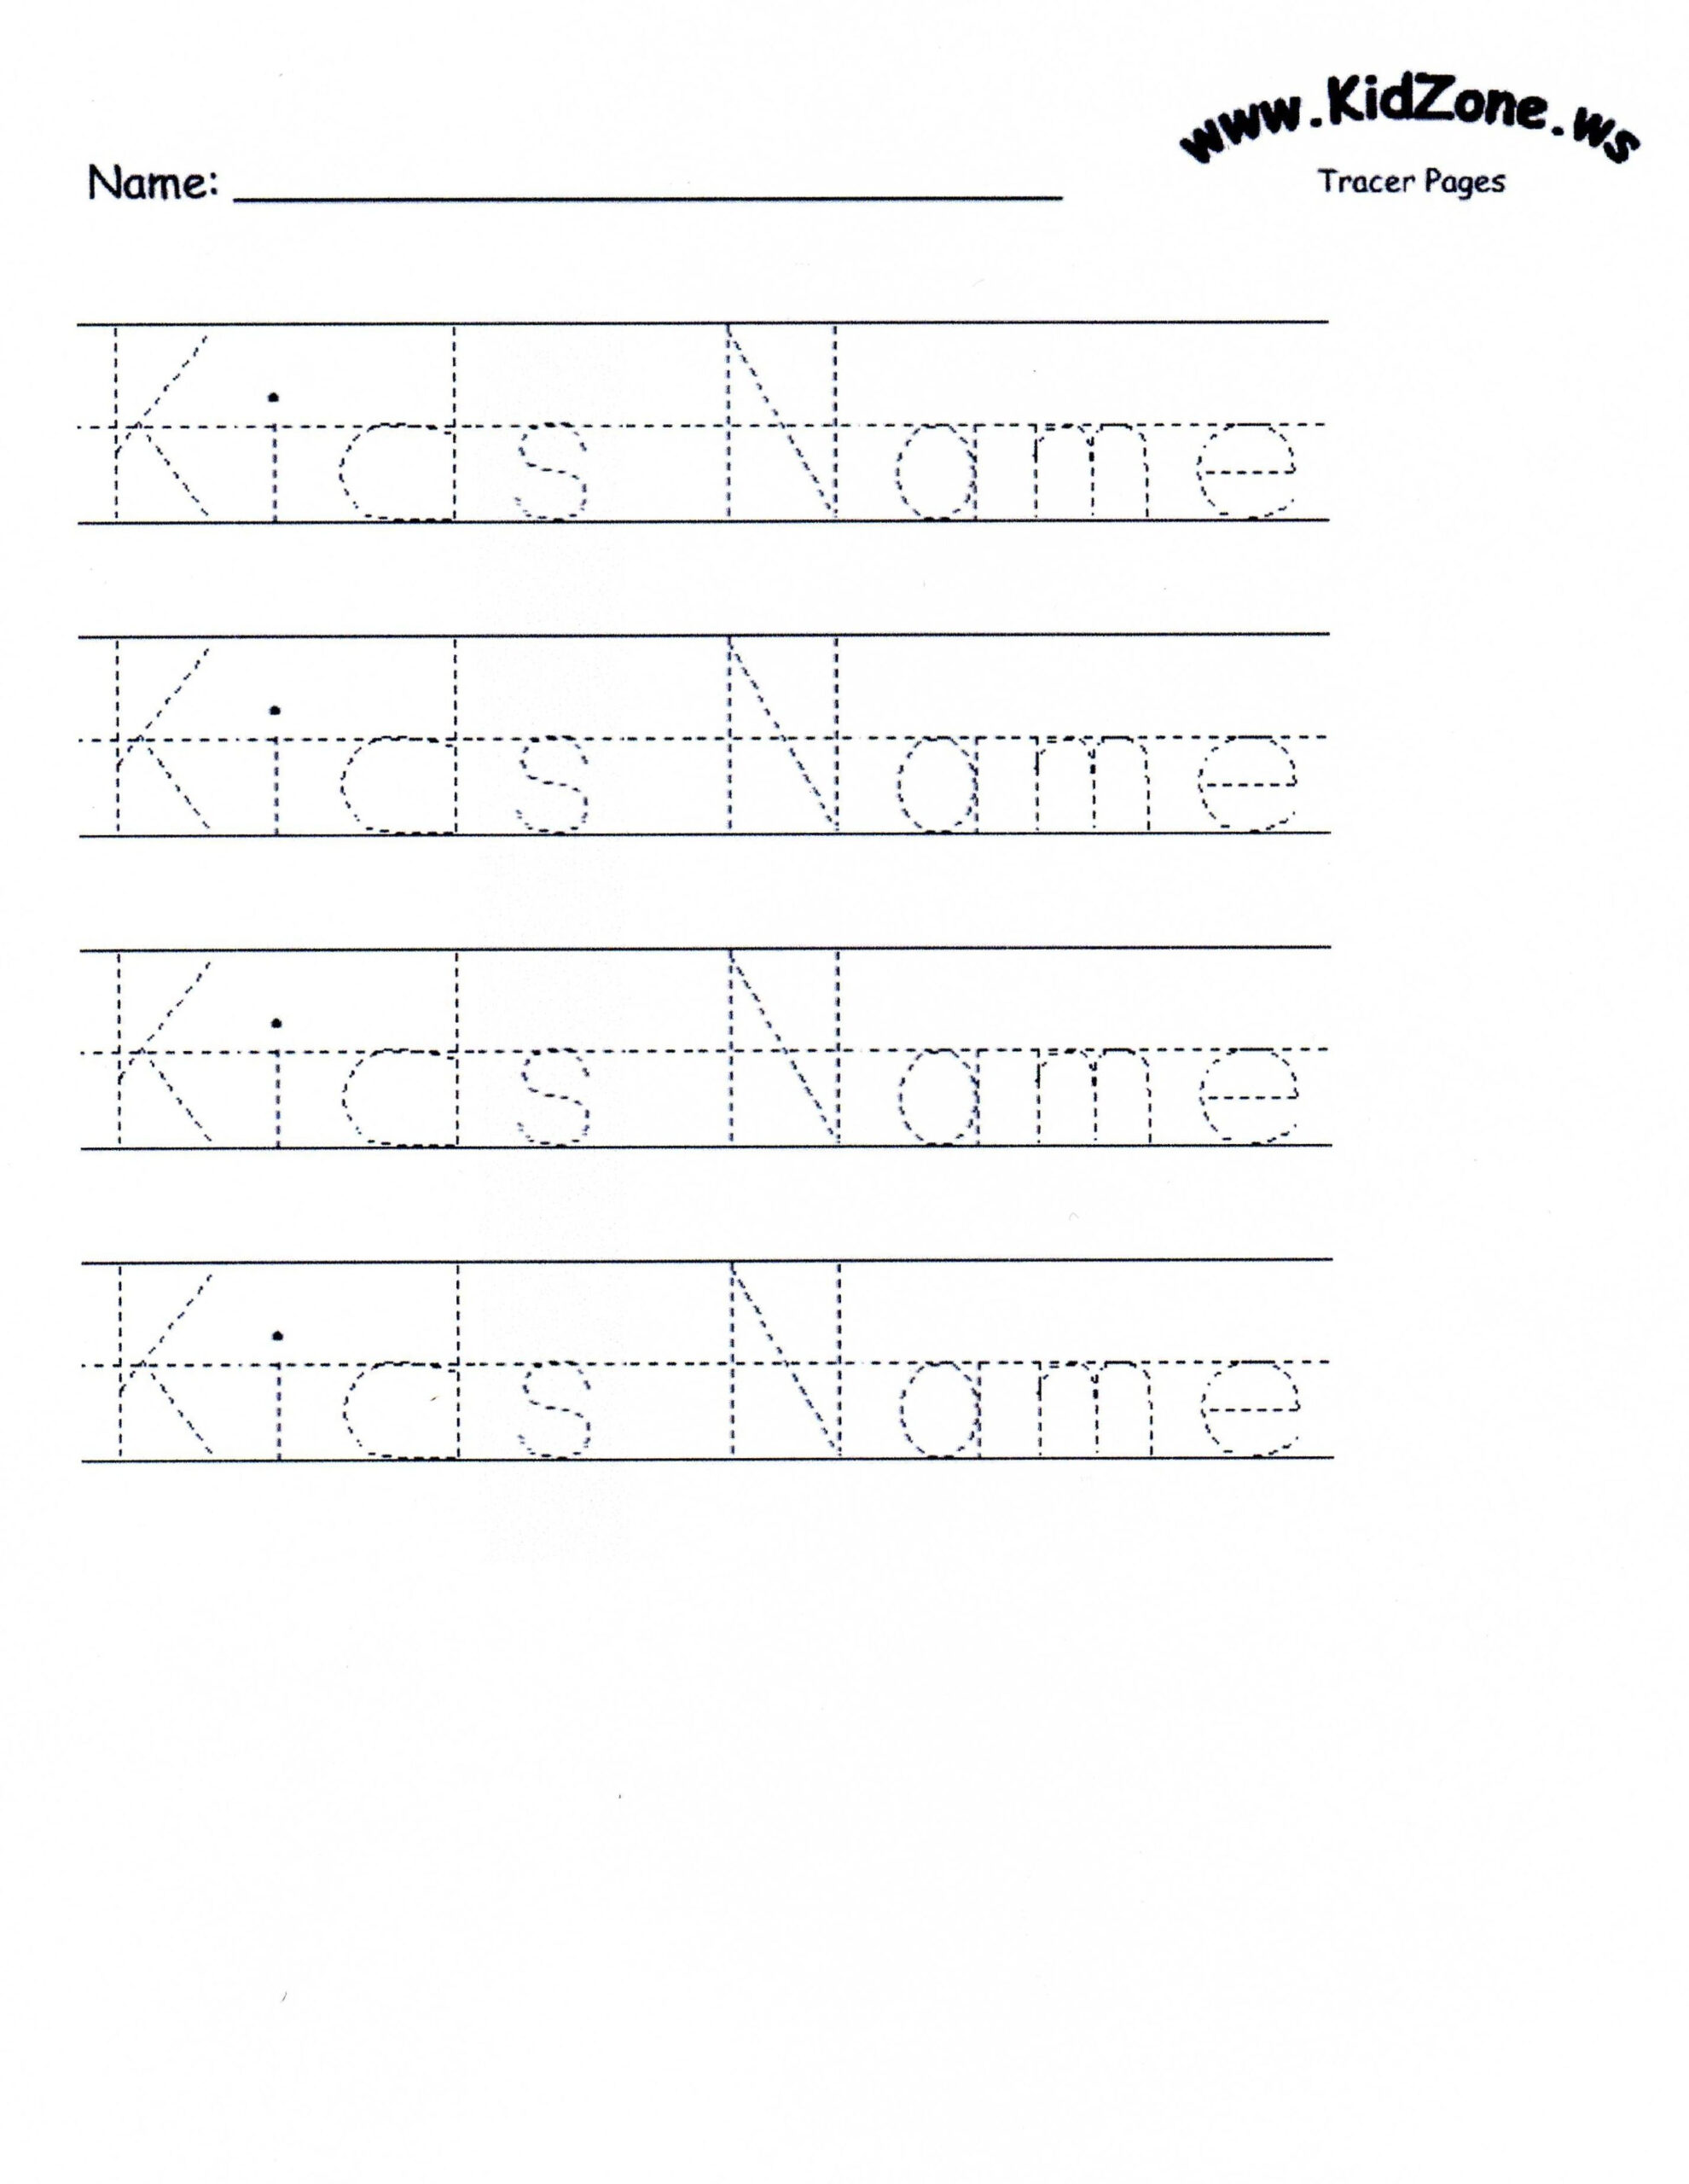 Customizable Printable Letter Pages | Name Tracing with Letter Tracing Name